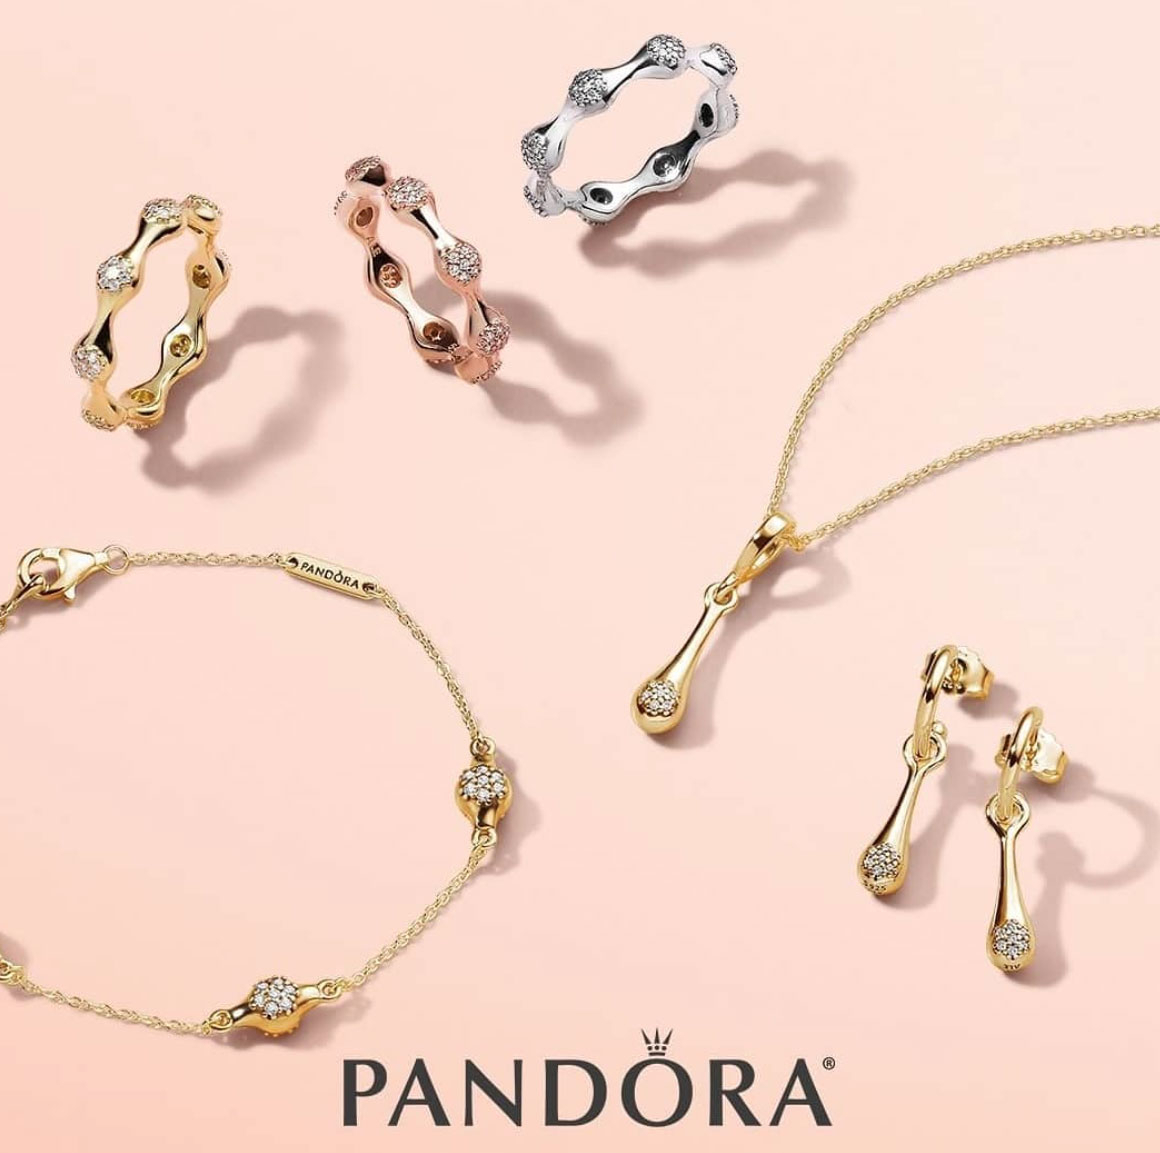 Pandora Pre Autumn 2018 Live Images – The Art Of Pandora | More Than With 2019 Pandora Moments Medium O Pendant Necklaces (Gallery 25 of 25)